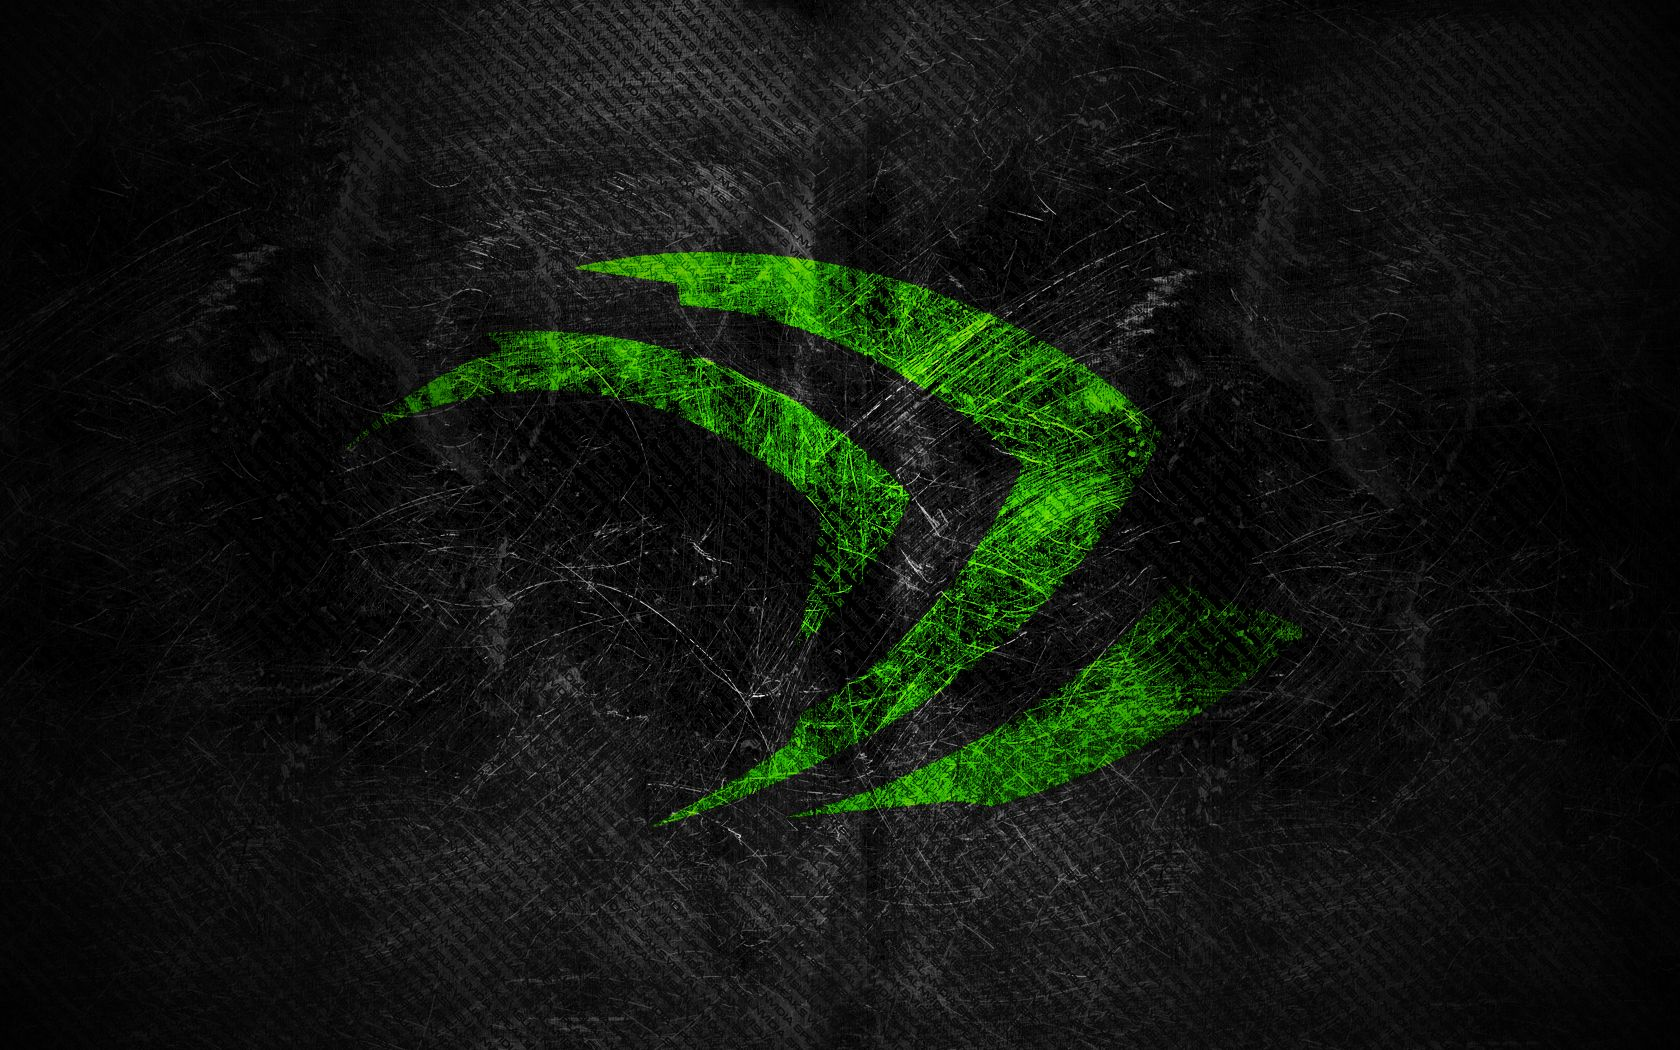 The Latest Nvidia Wallpapers For Your Desktop Best Free Nvidia Wallpapers In High Definition Free